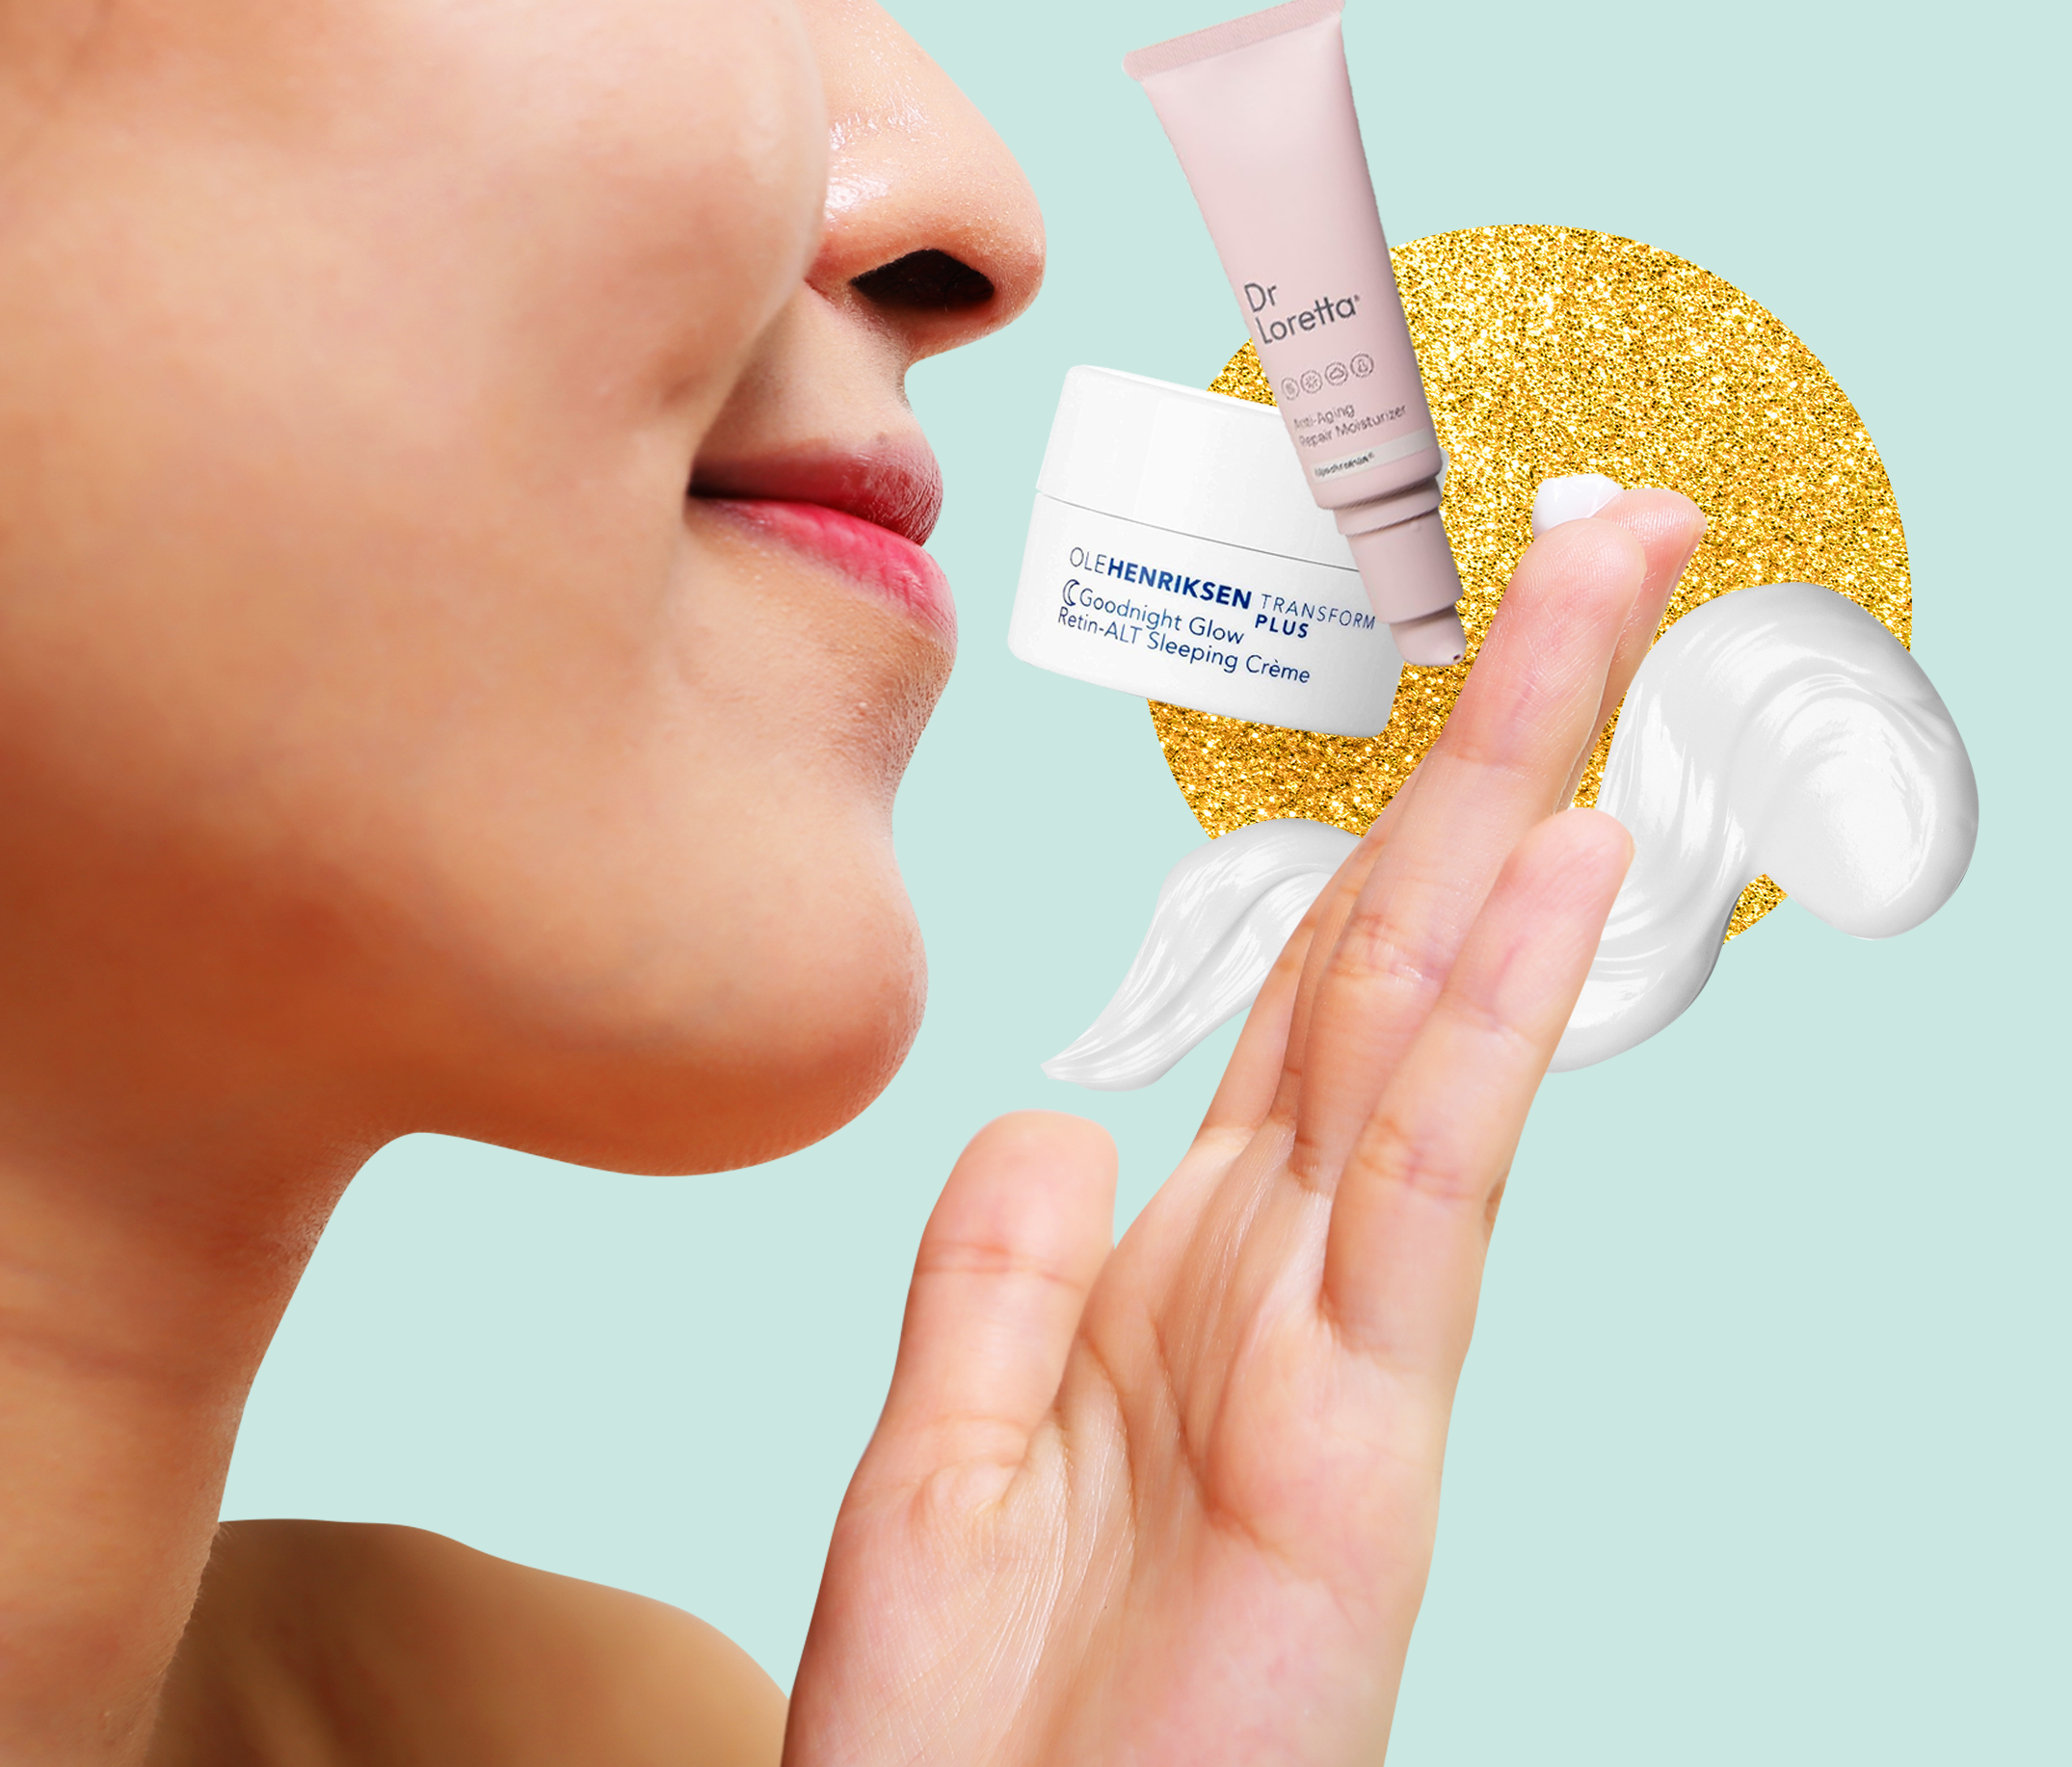 15 Best Anti Aging Creams For Wrinkles And Fine Lines In 2020